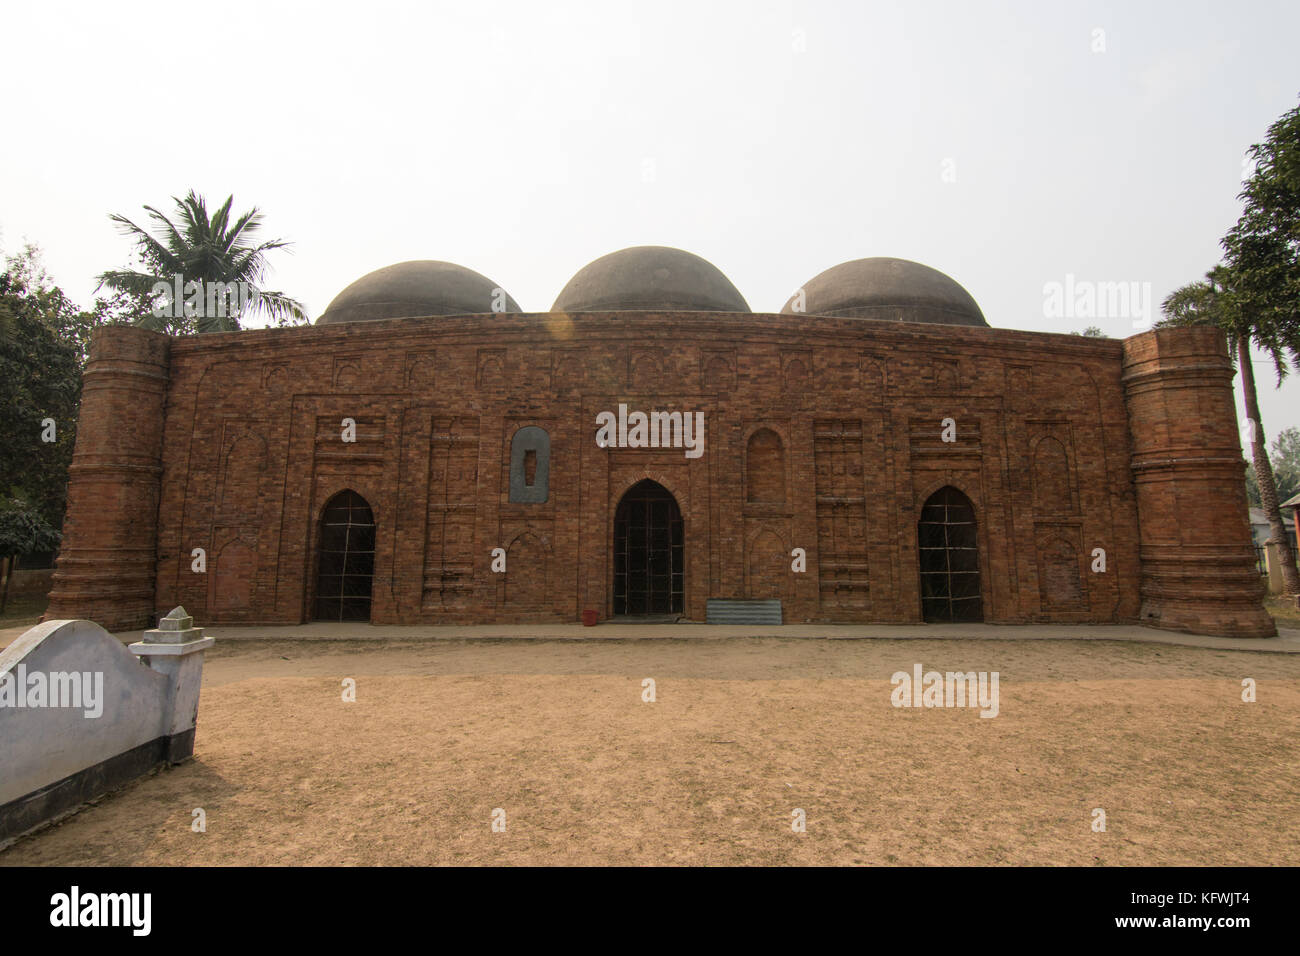 history of bangladesh History of bangladesh, experience the modern and ancient historic past events, people and governments of bangladesh - lonely planet.